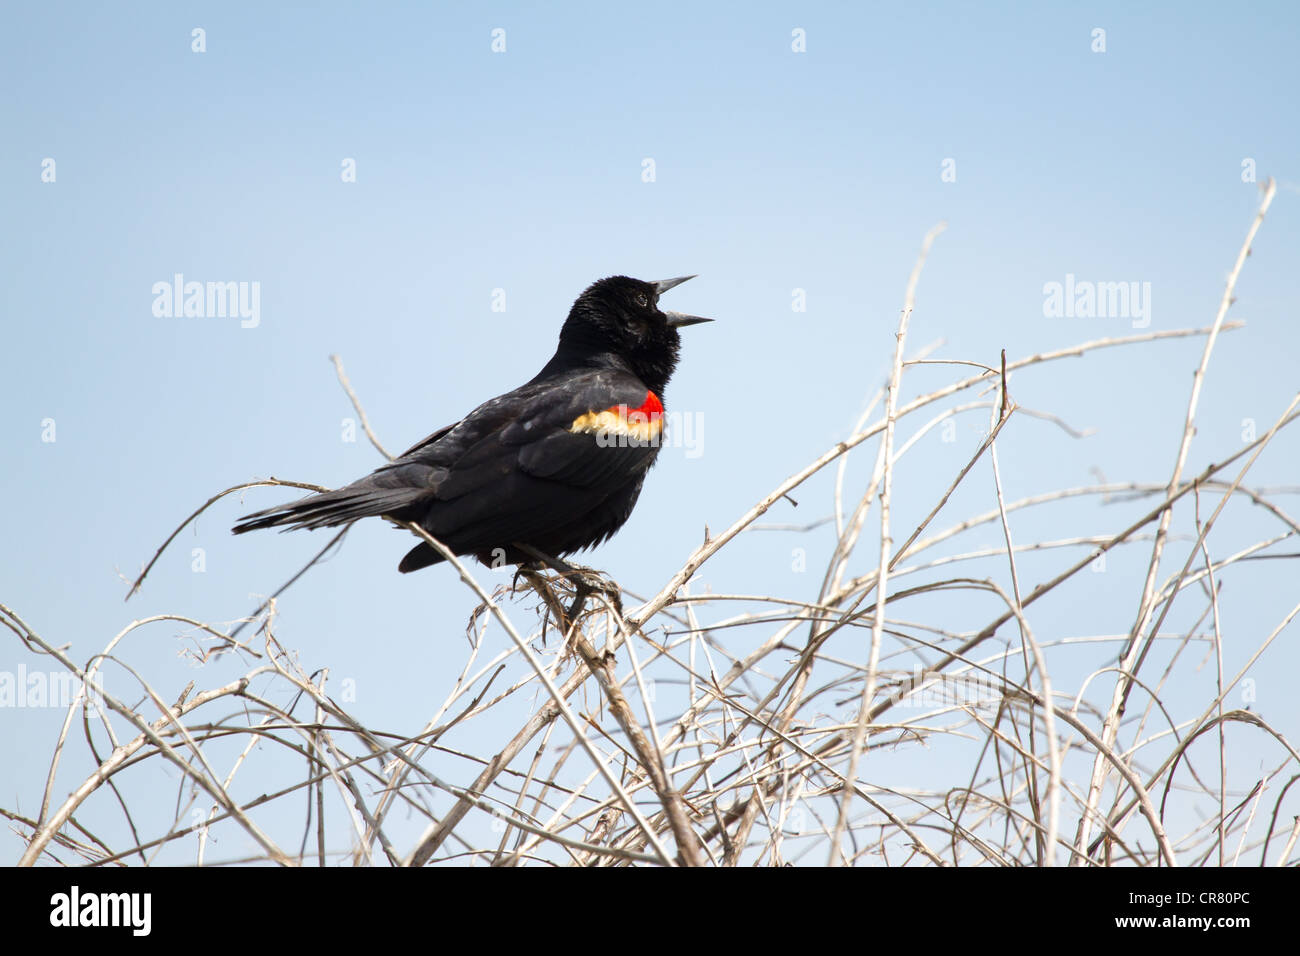 A male red-winged blackbird sings out loud in Arlington, TX. - Stock Image